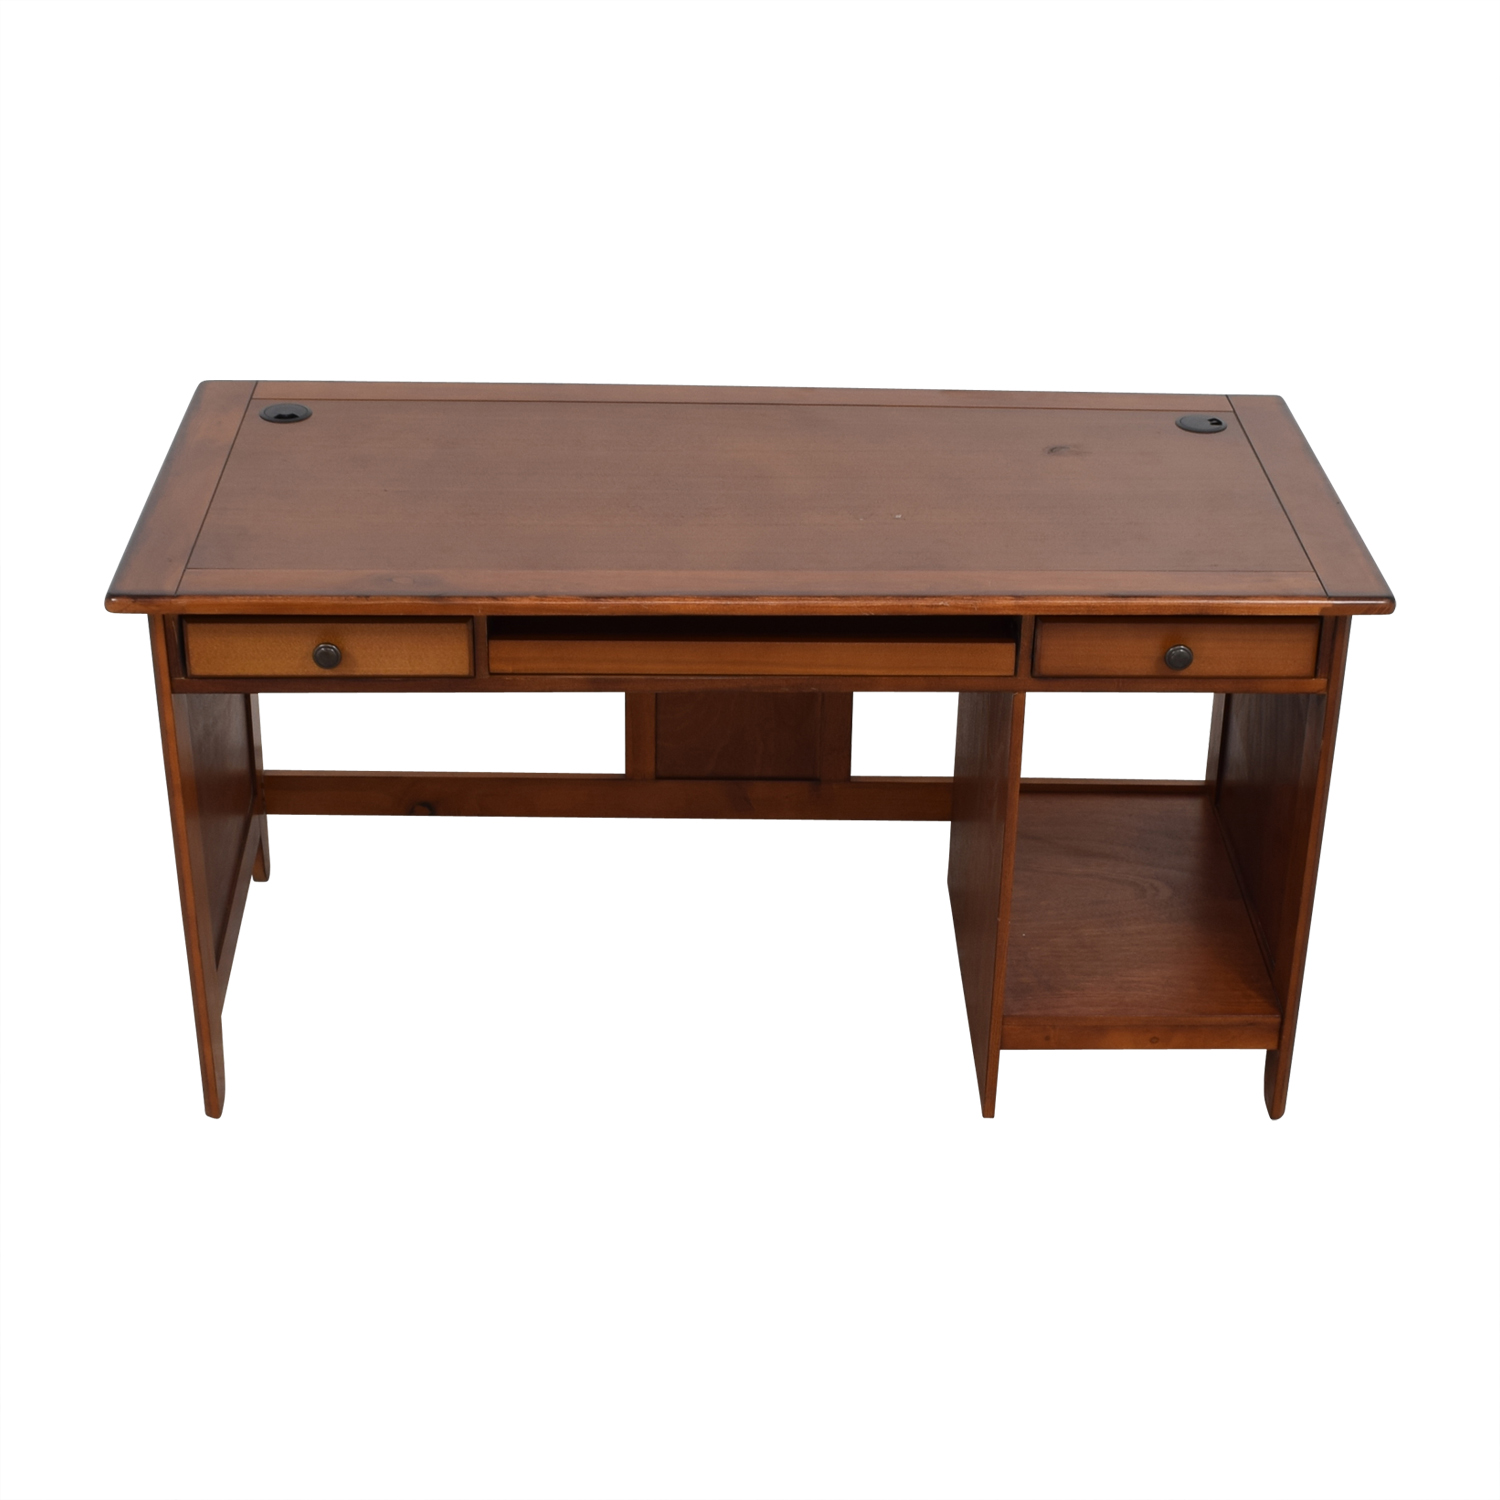 Wood Desk in Warm Walnut Finish nj